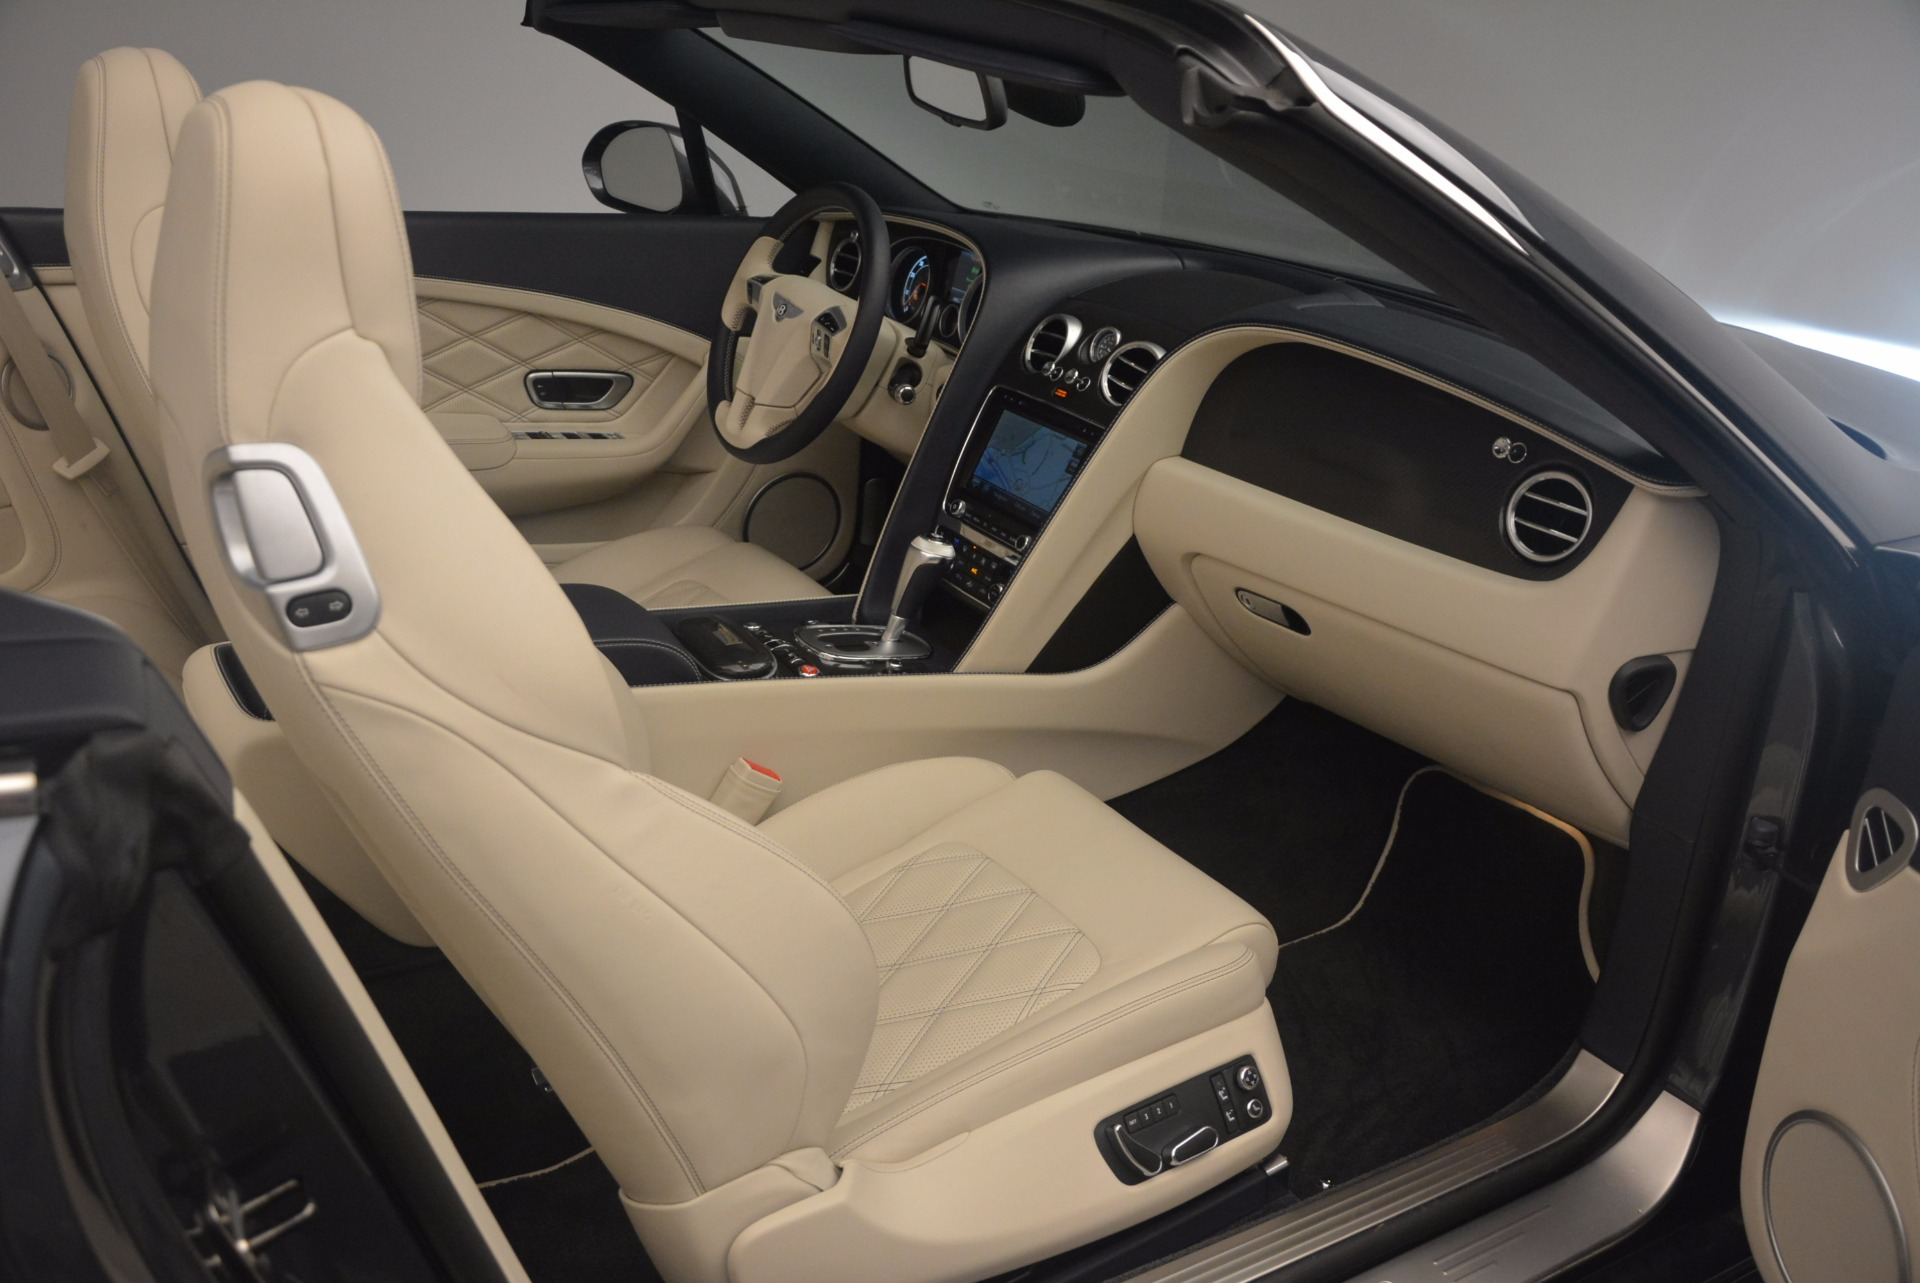 Used 2013 Bentley Continental GT V8 Le Mans Edition, 1 of 48 For Sale In Westport, CT 1288_p48